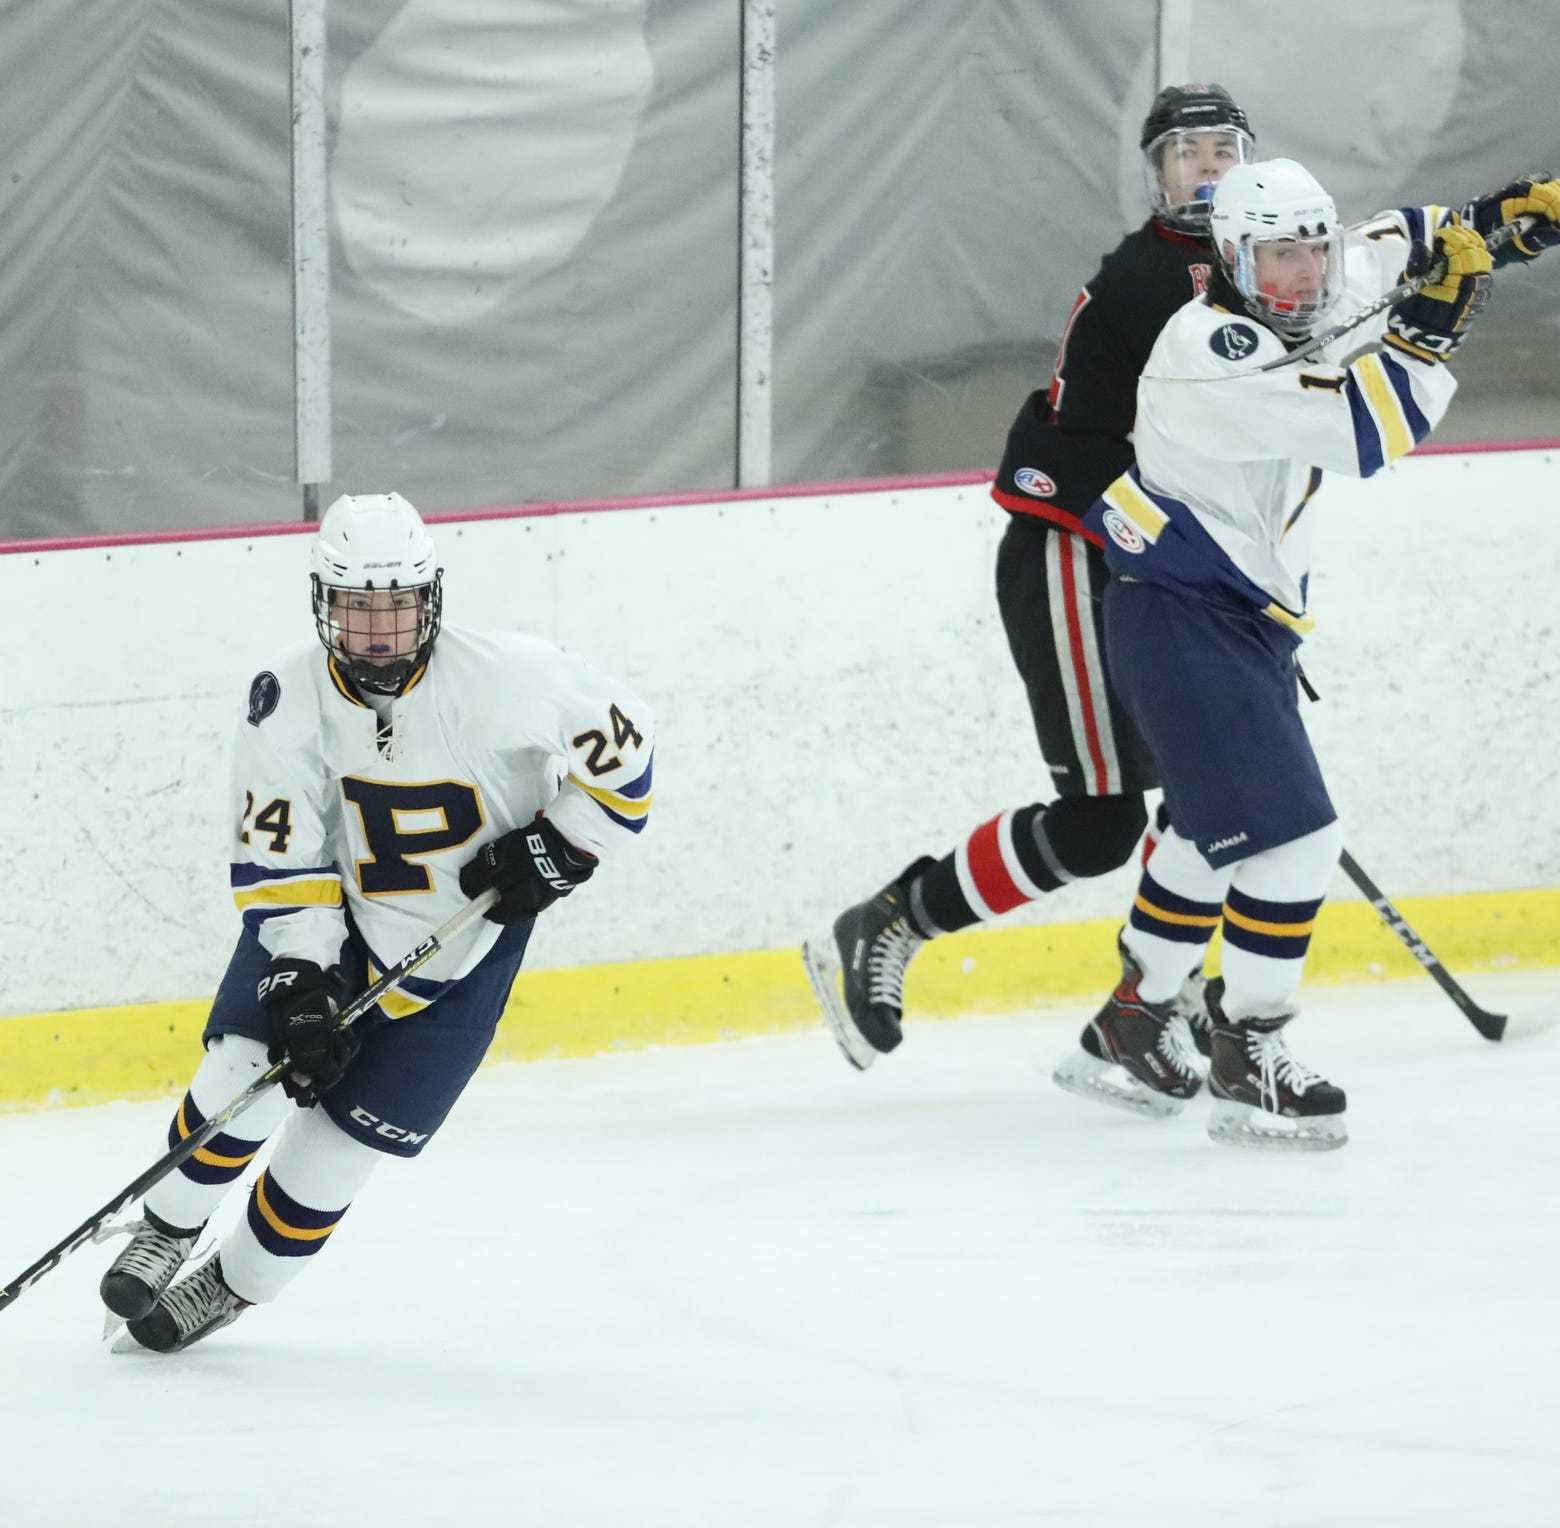 Hockey: Miracle on ice as Pelham scores twice in last 26.5 seconds for 4-3 win over Rye